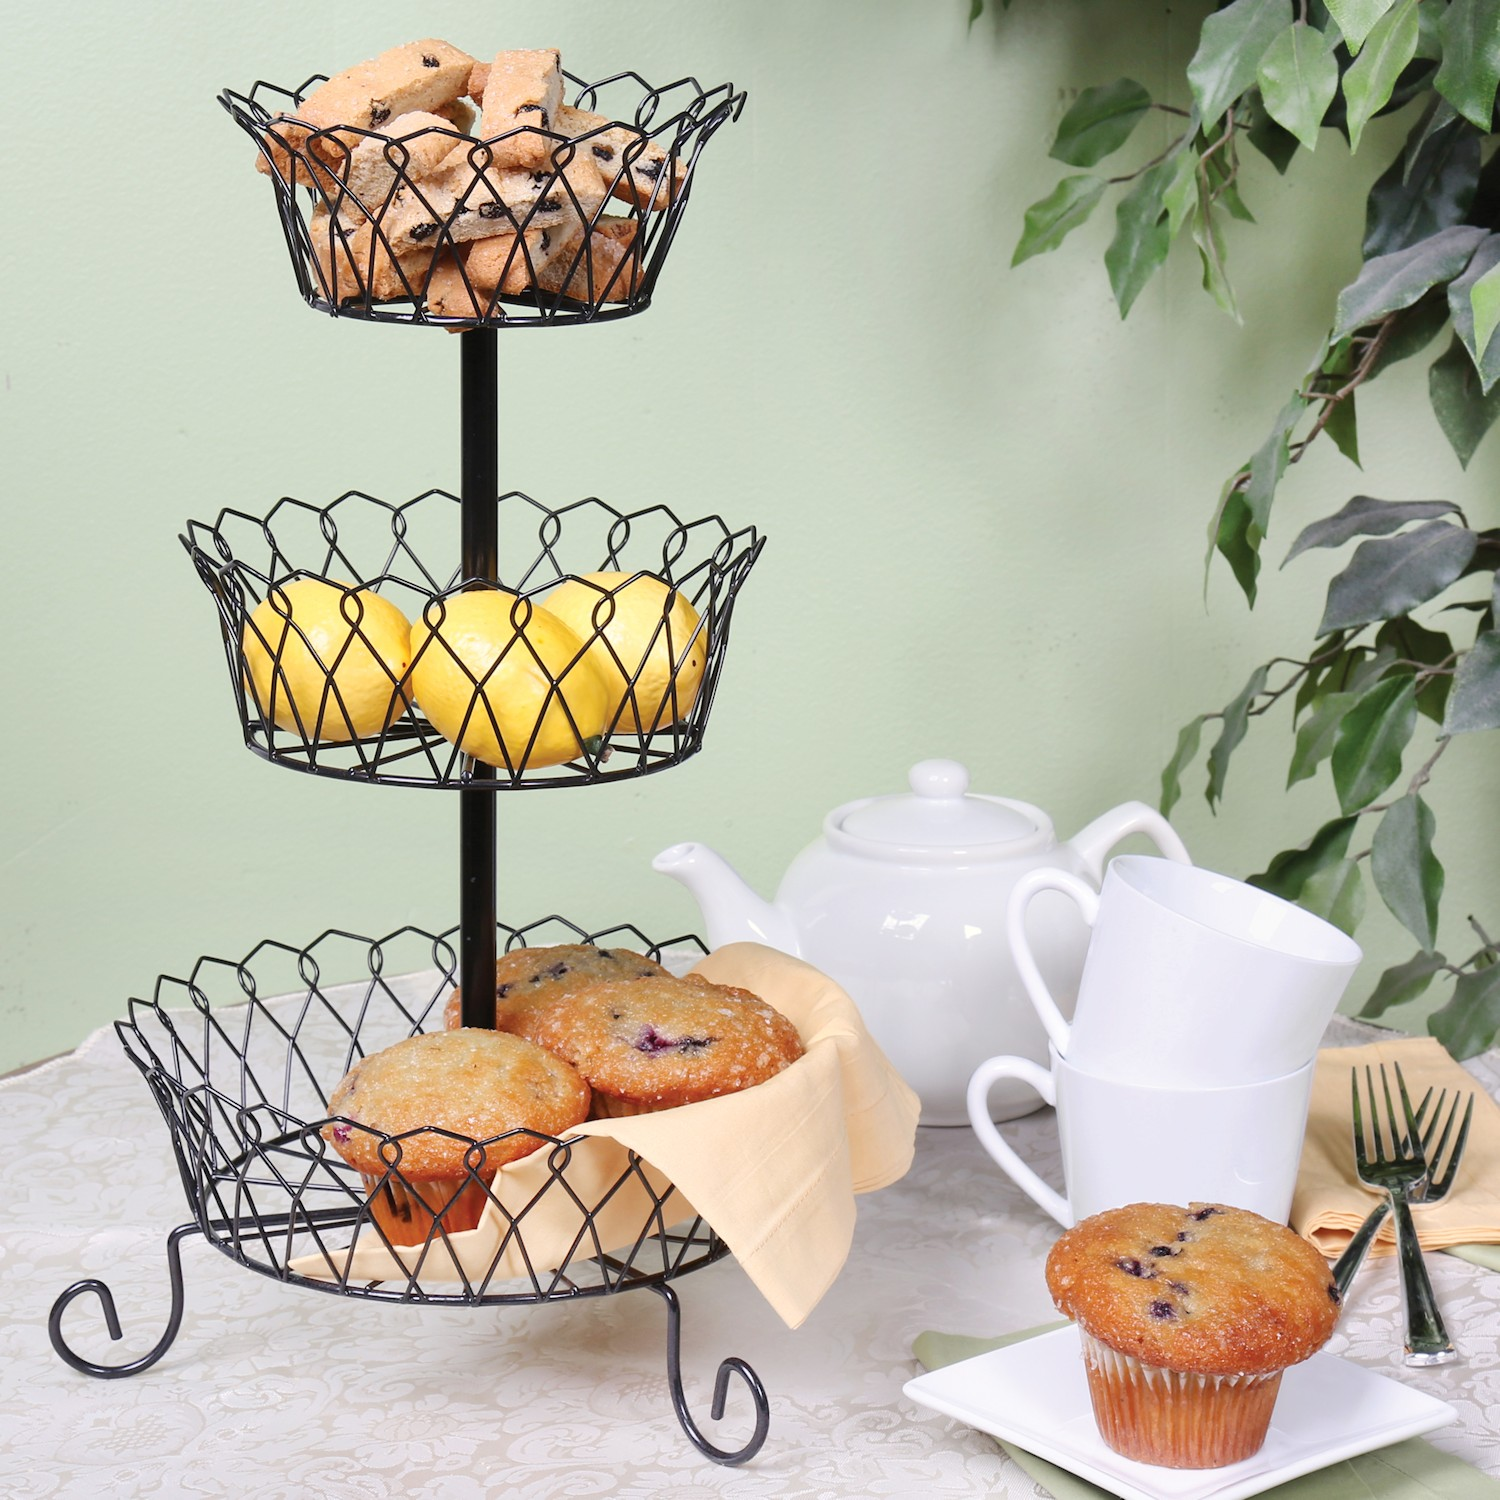 Table Top Fruit Basket Home District 3 Tier Iron Fruit Basket Stand Countertop